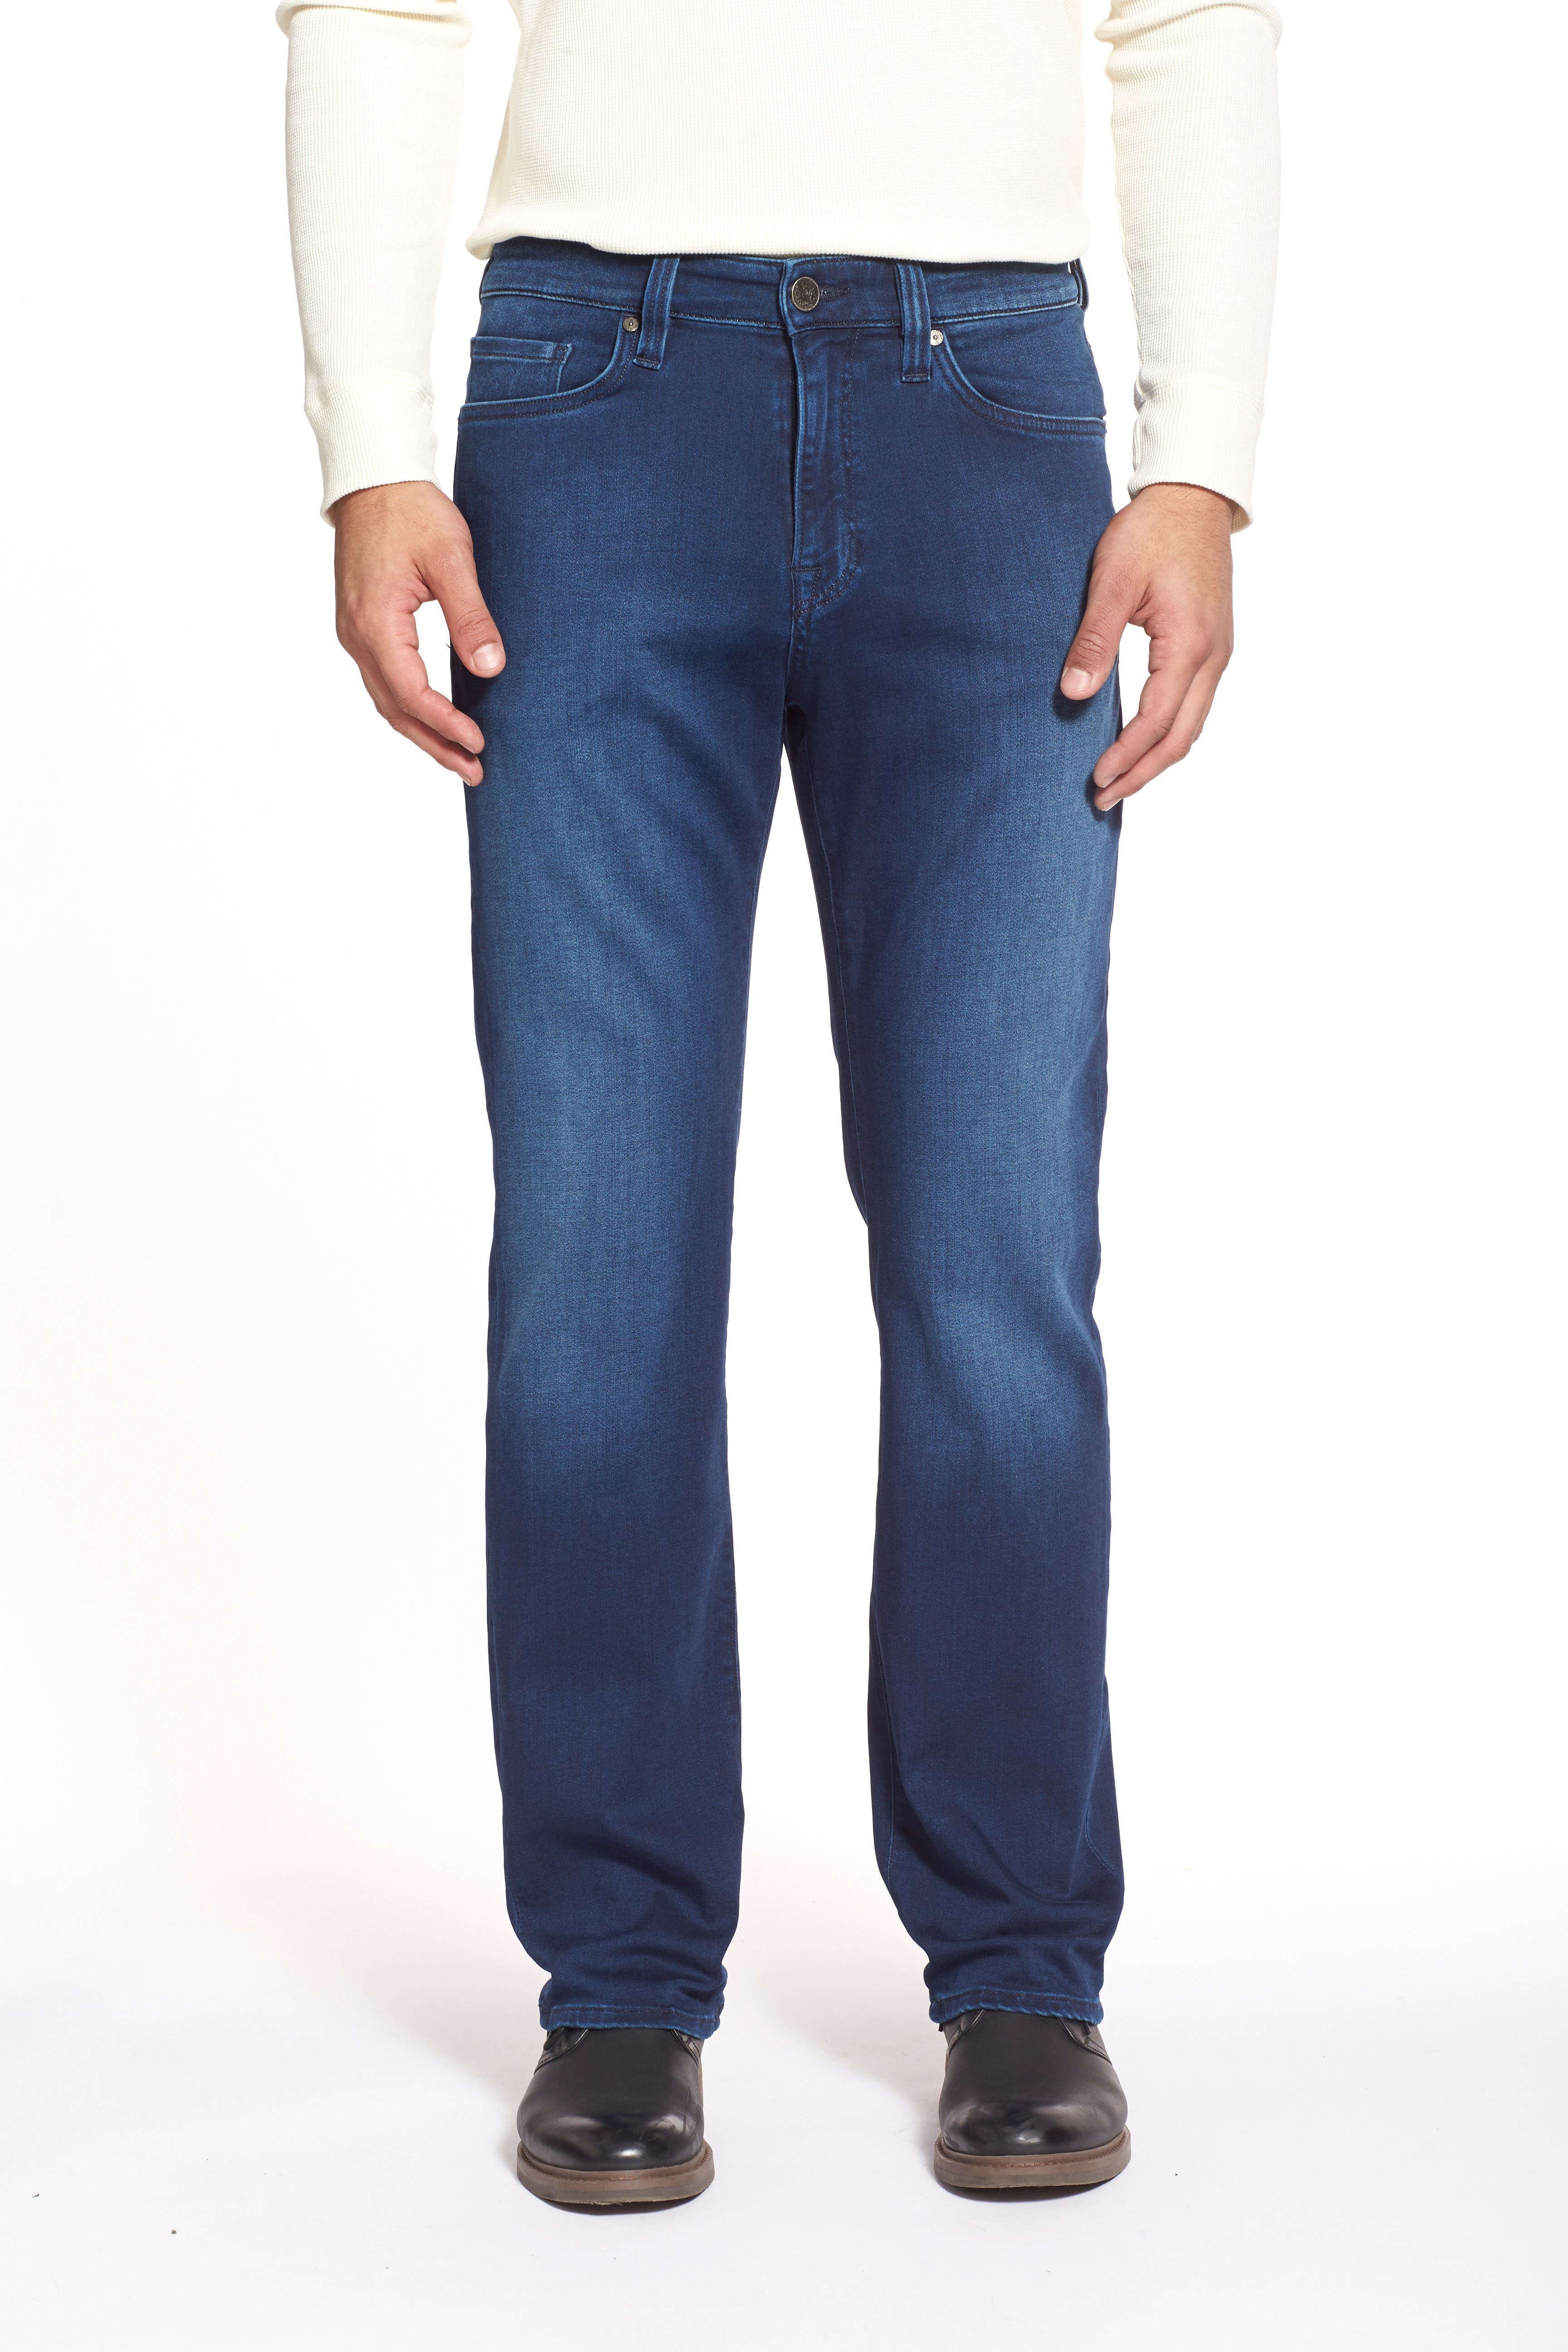 'Charisma' Relaxed Fit Jeans,                             Alternate thumbnail 2, color,                             401